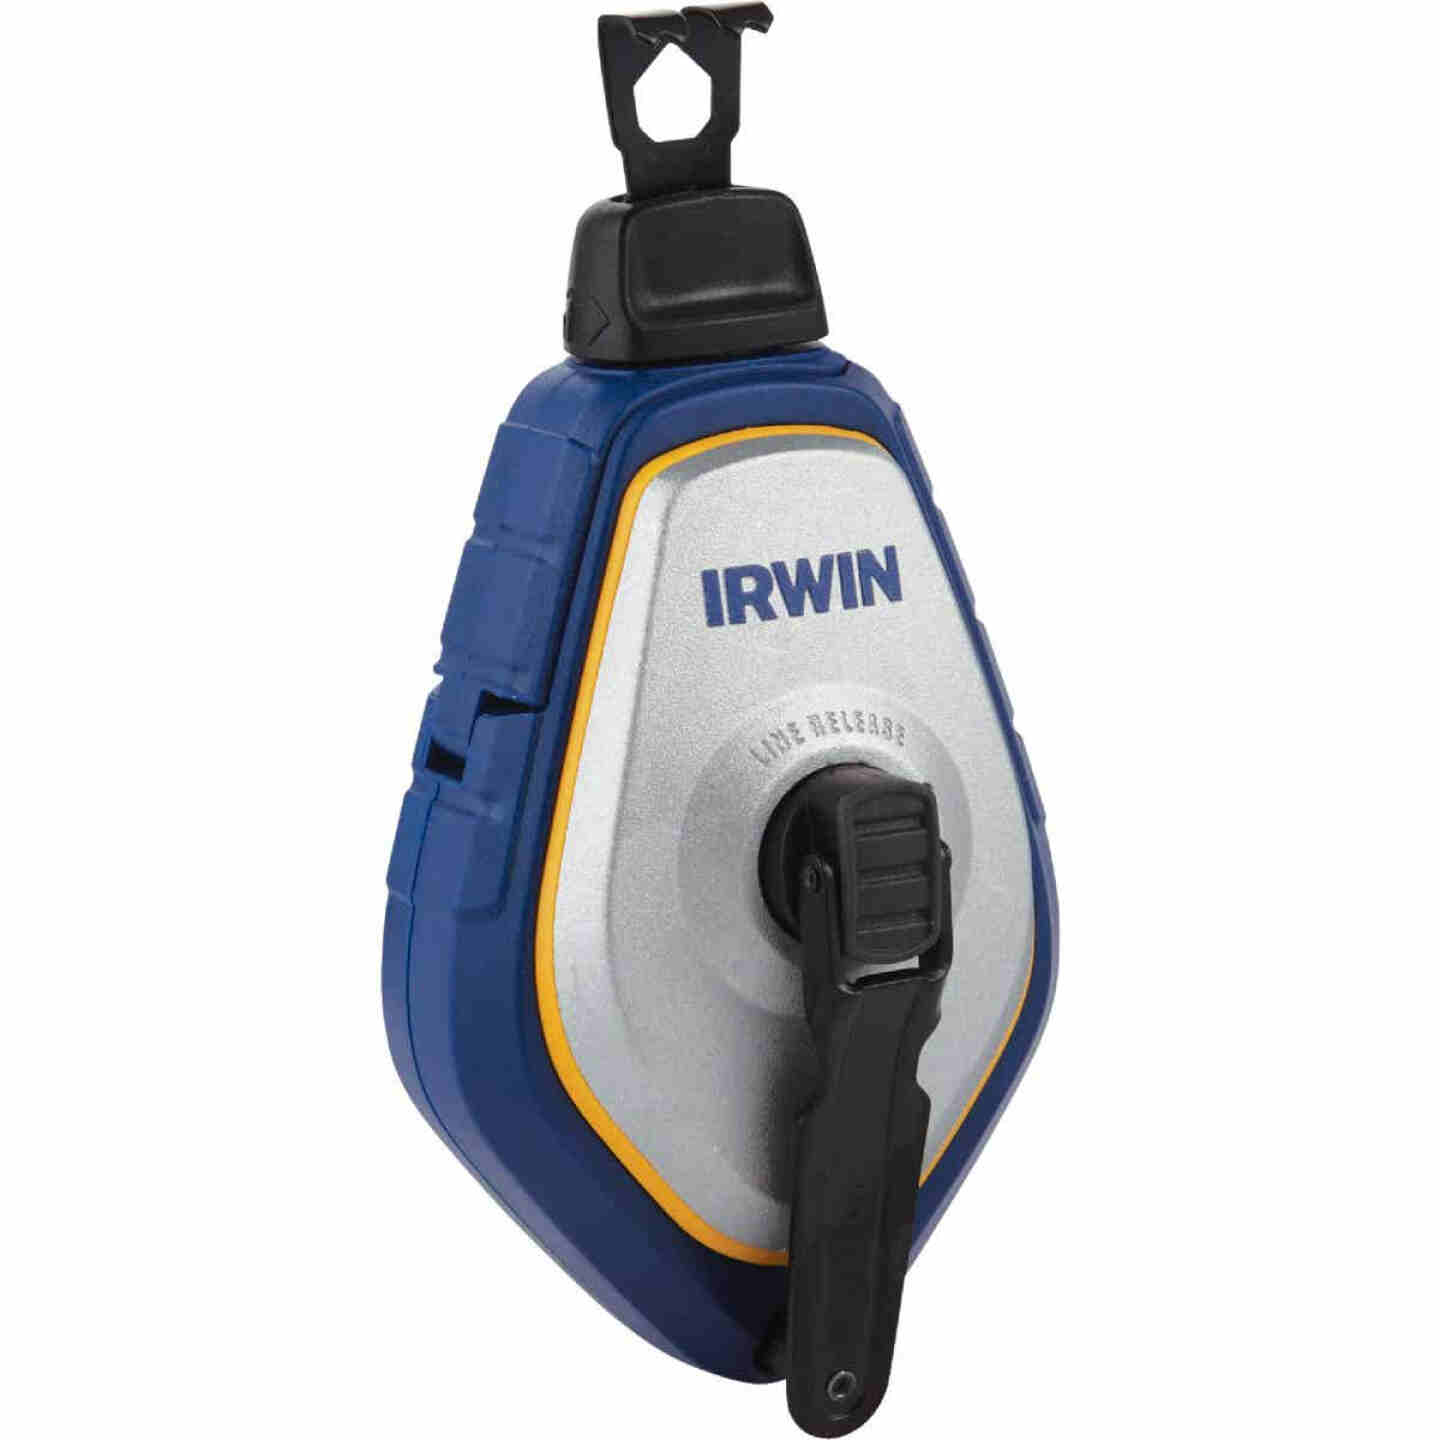 Irwin STRAIT-LINE Speed-Line Pro 100 Ft. Chalk Line Reel Image 1